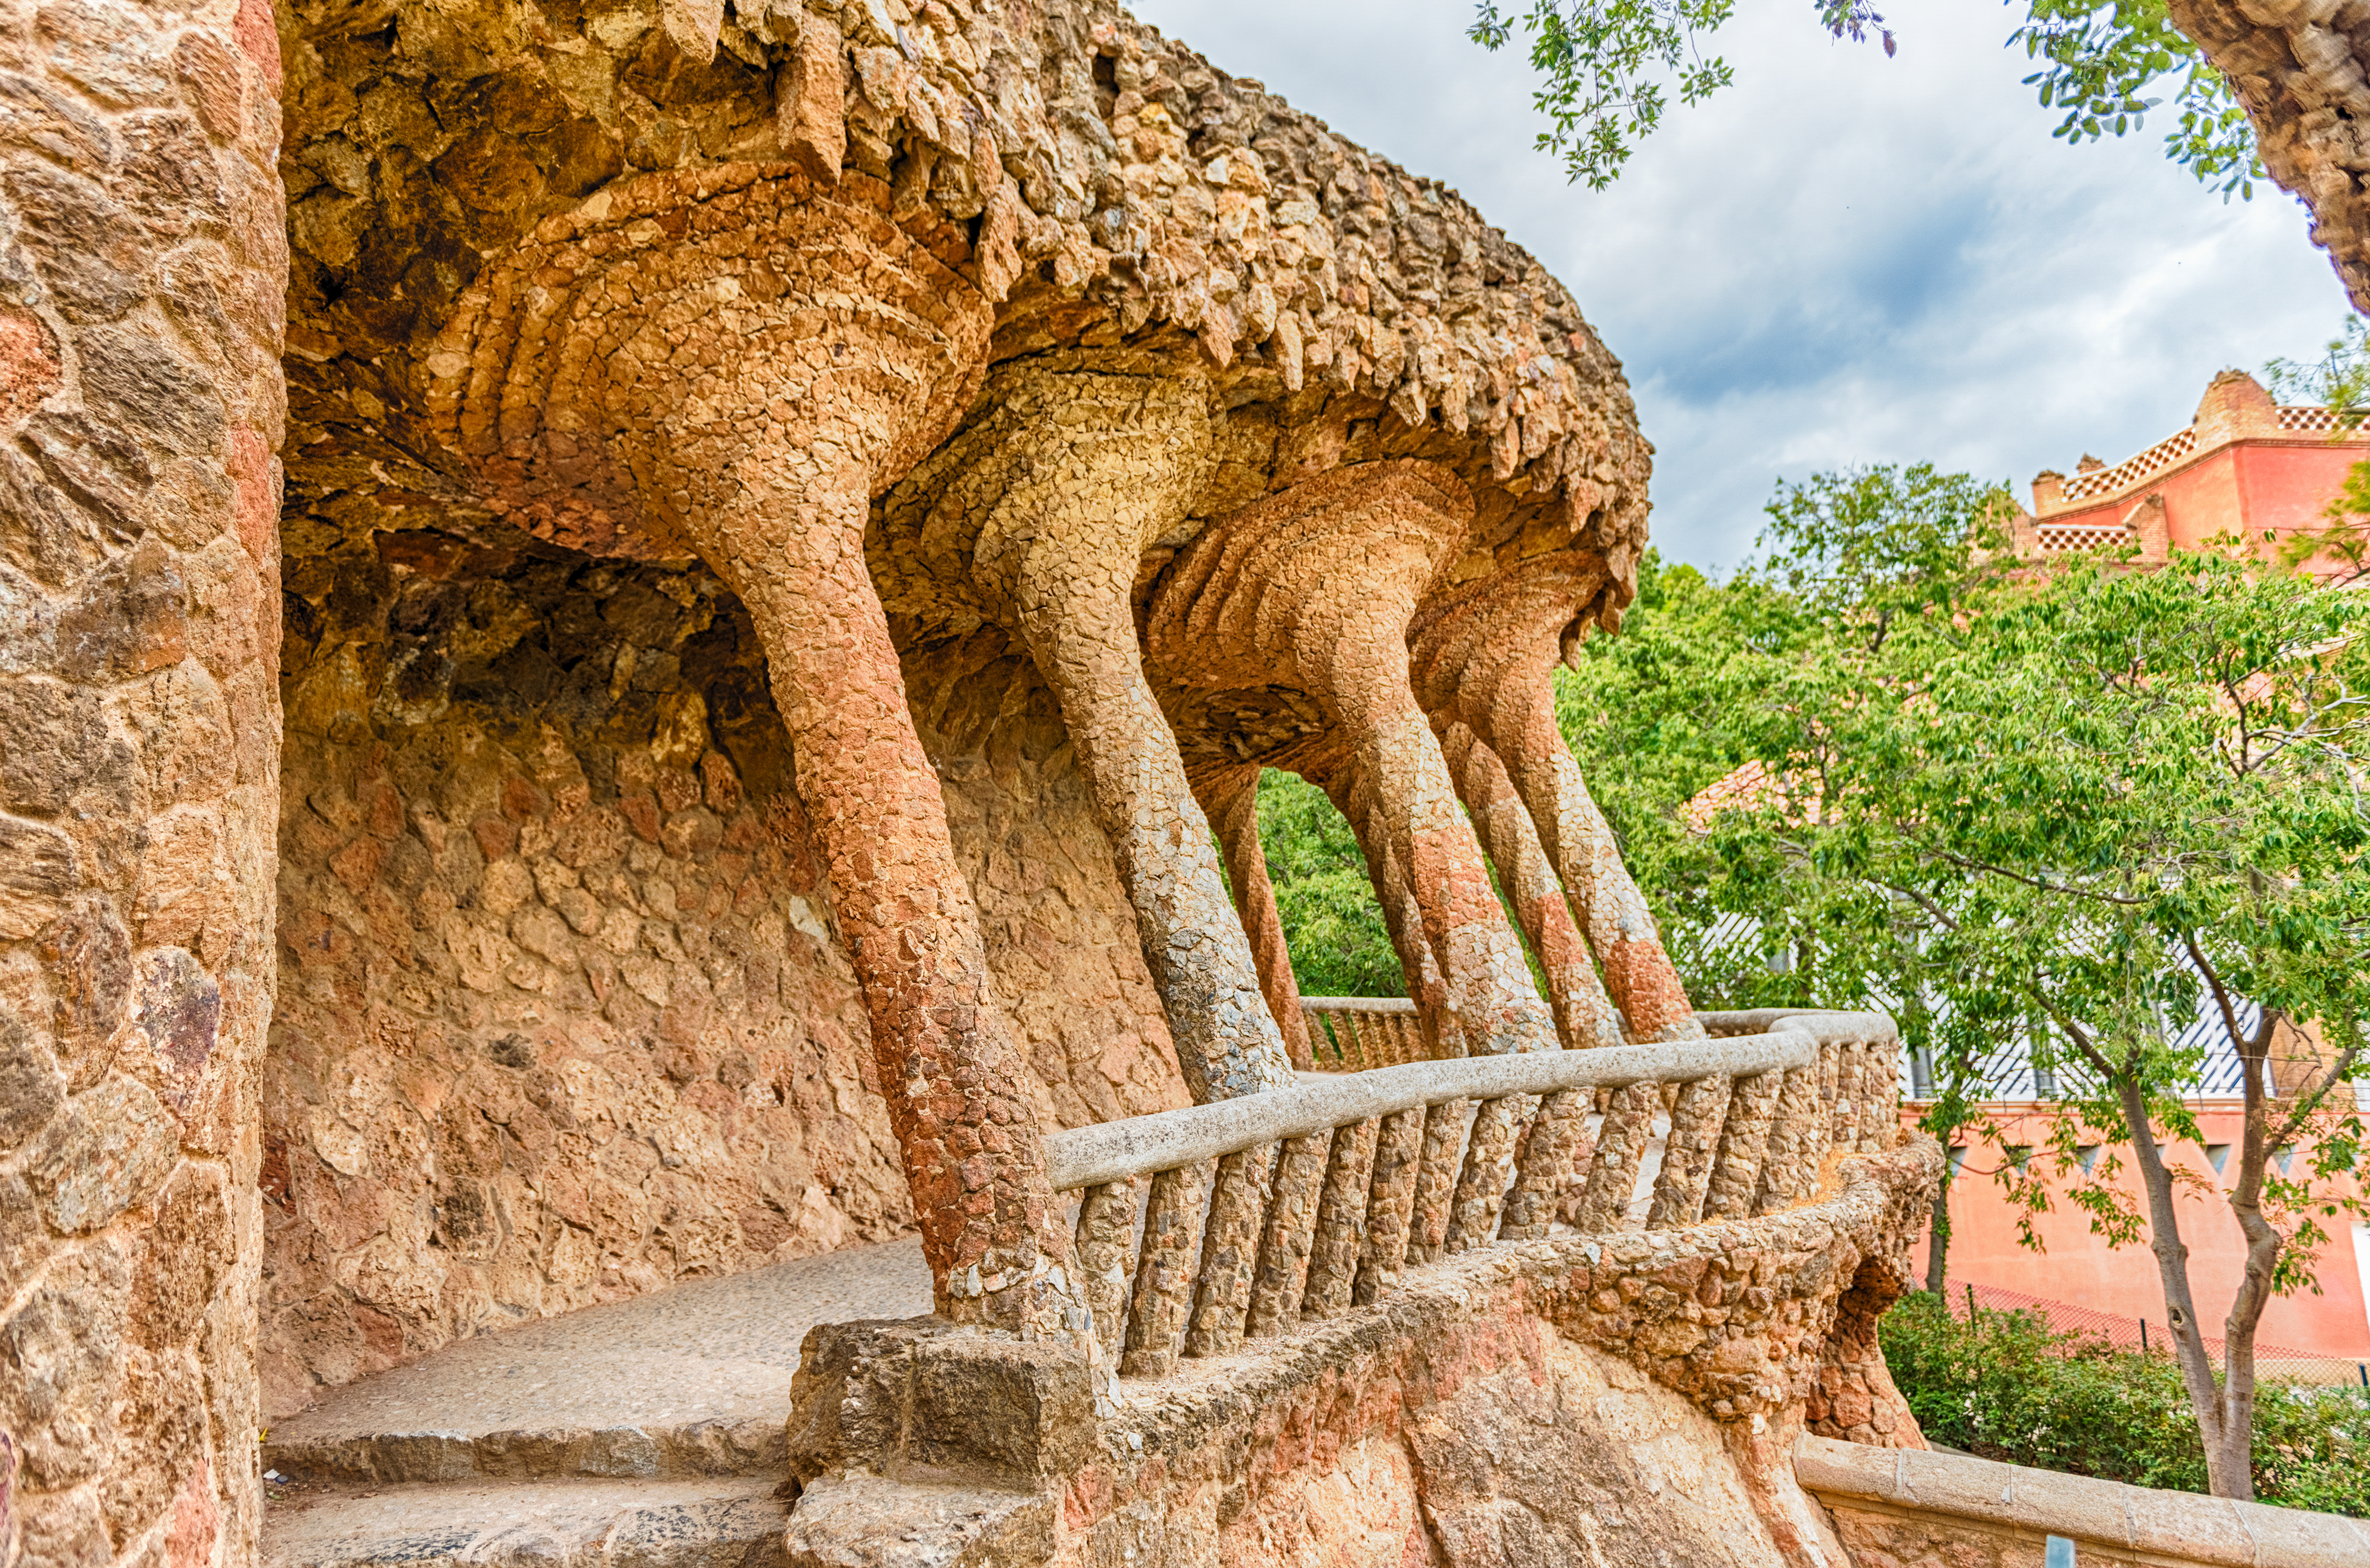 Colonnaded roadway viaduct in Park Guell, Barcelona, Catalonia, Spain